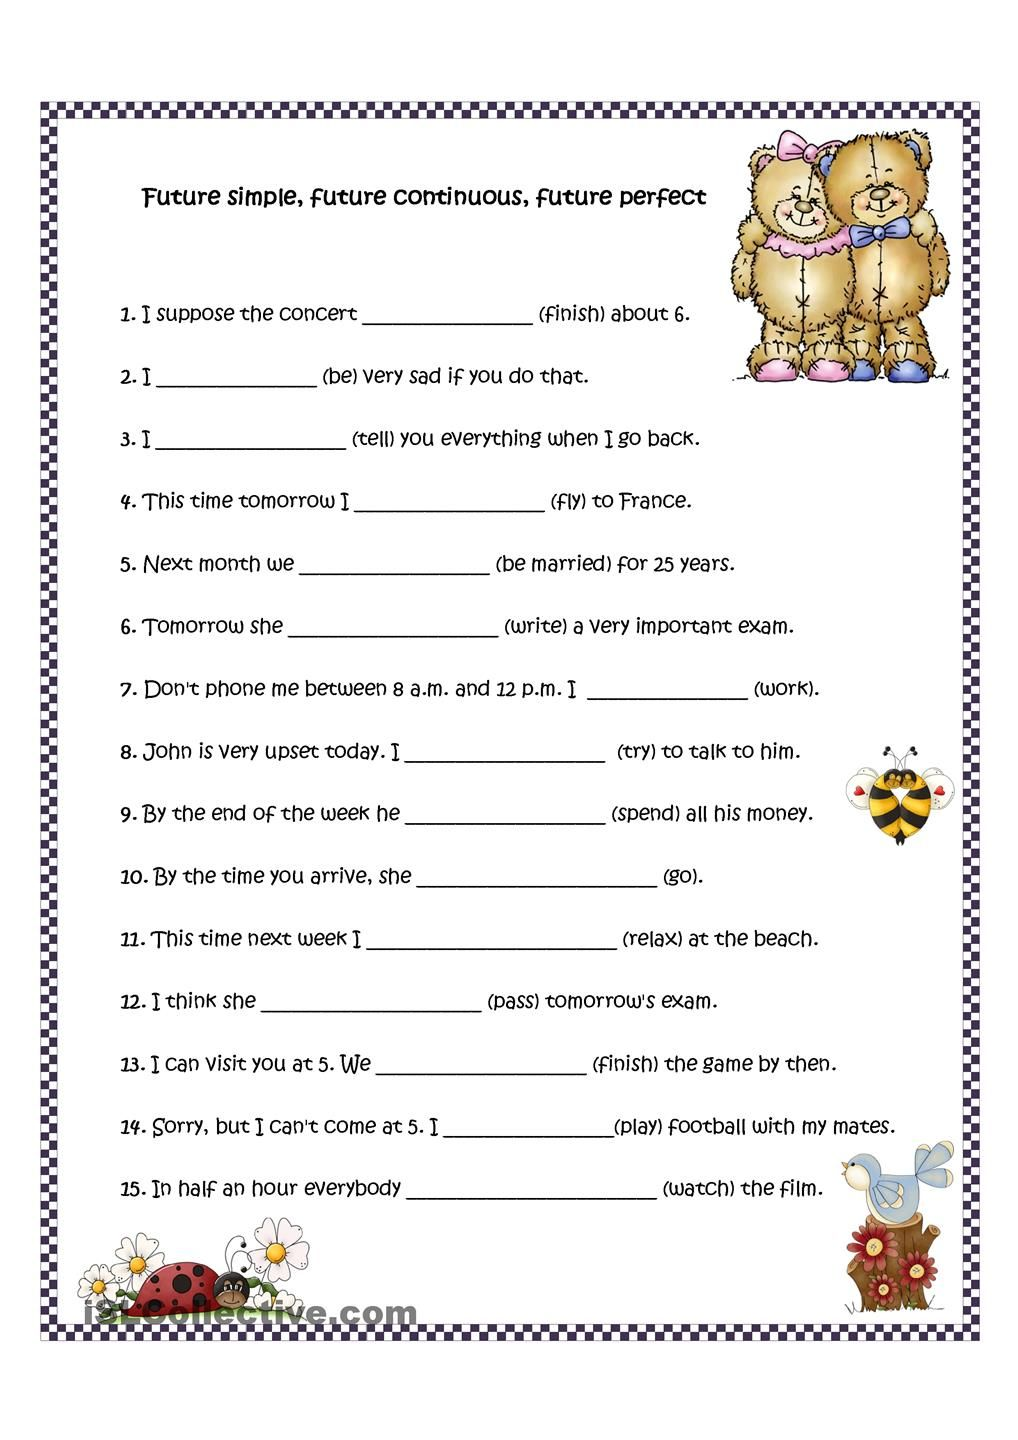 small resolution of 19+ Simple Future Tense Worksheets Pdf